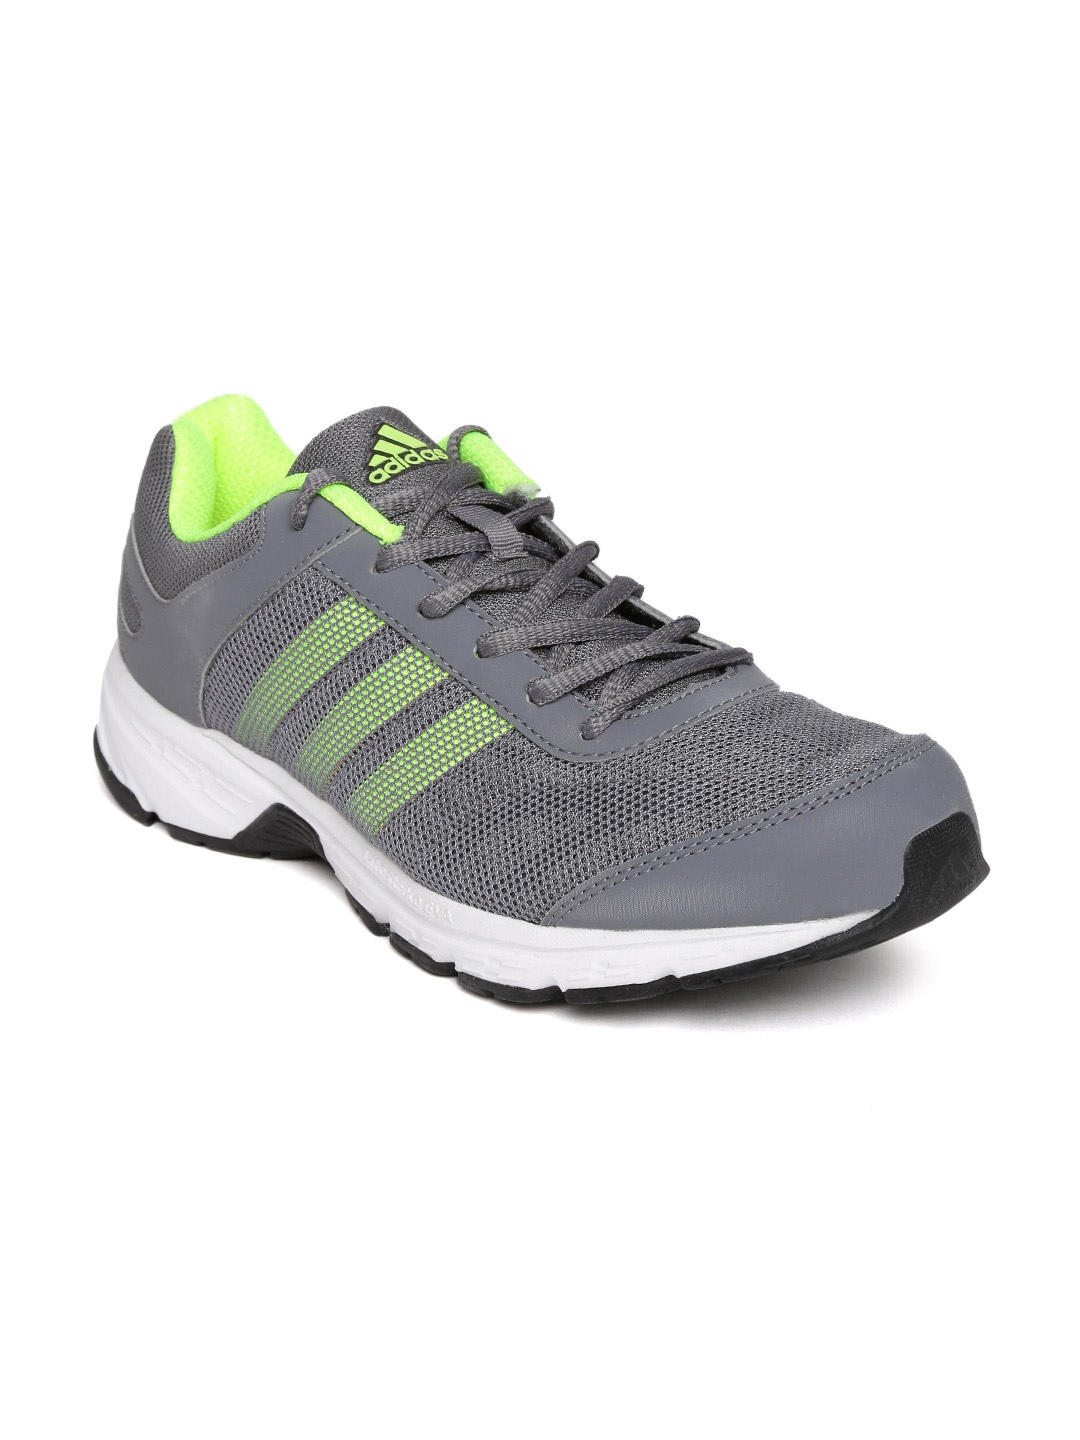 home footwear footwear sports shoes adidas sports shoes